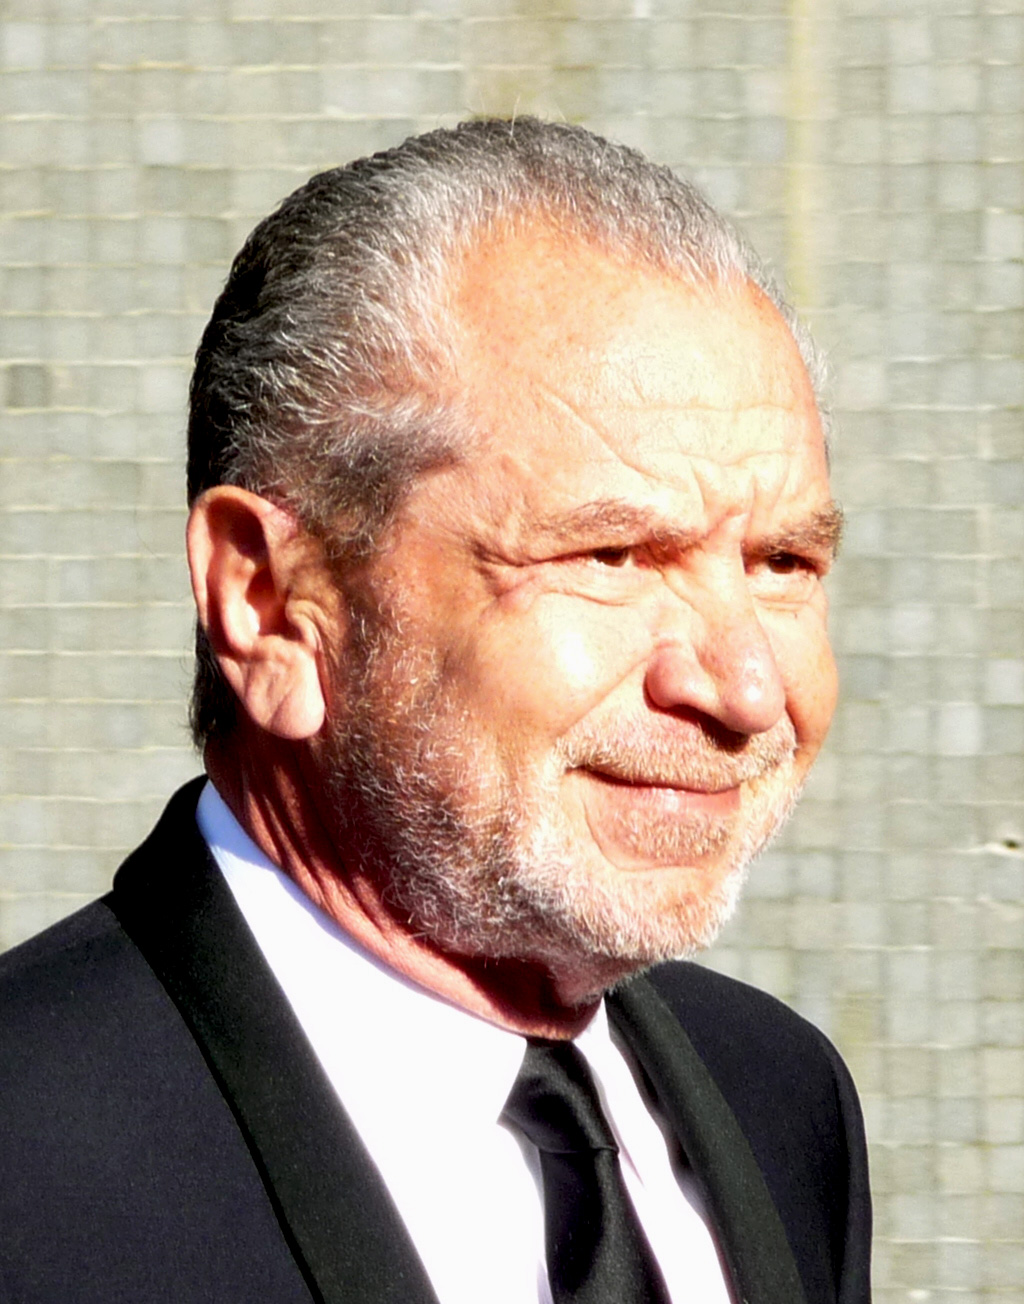 Lord Alan Sugar says moaning businesses do not deserve loans